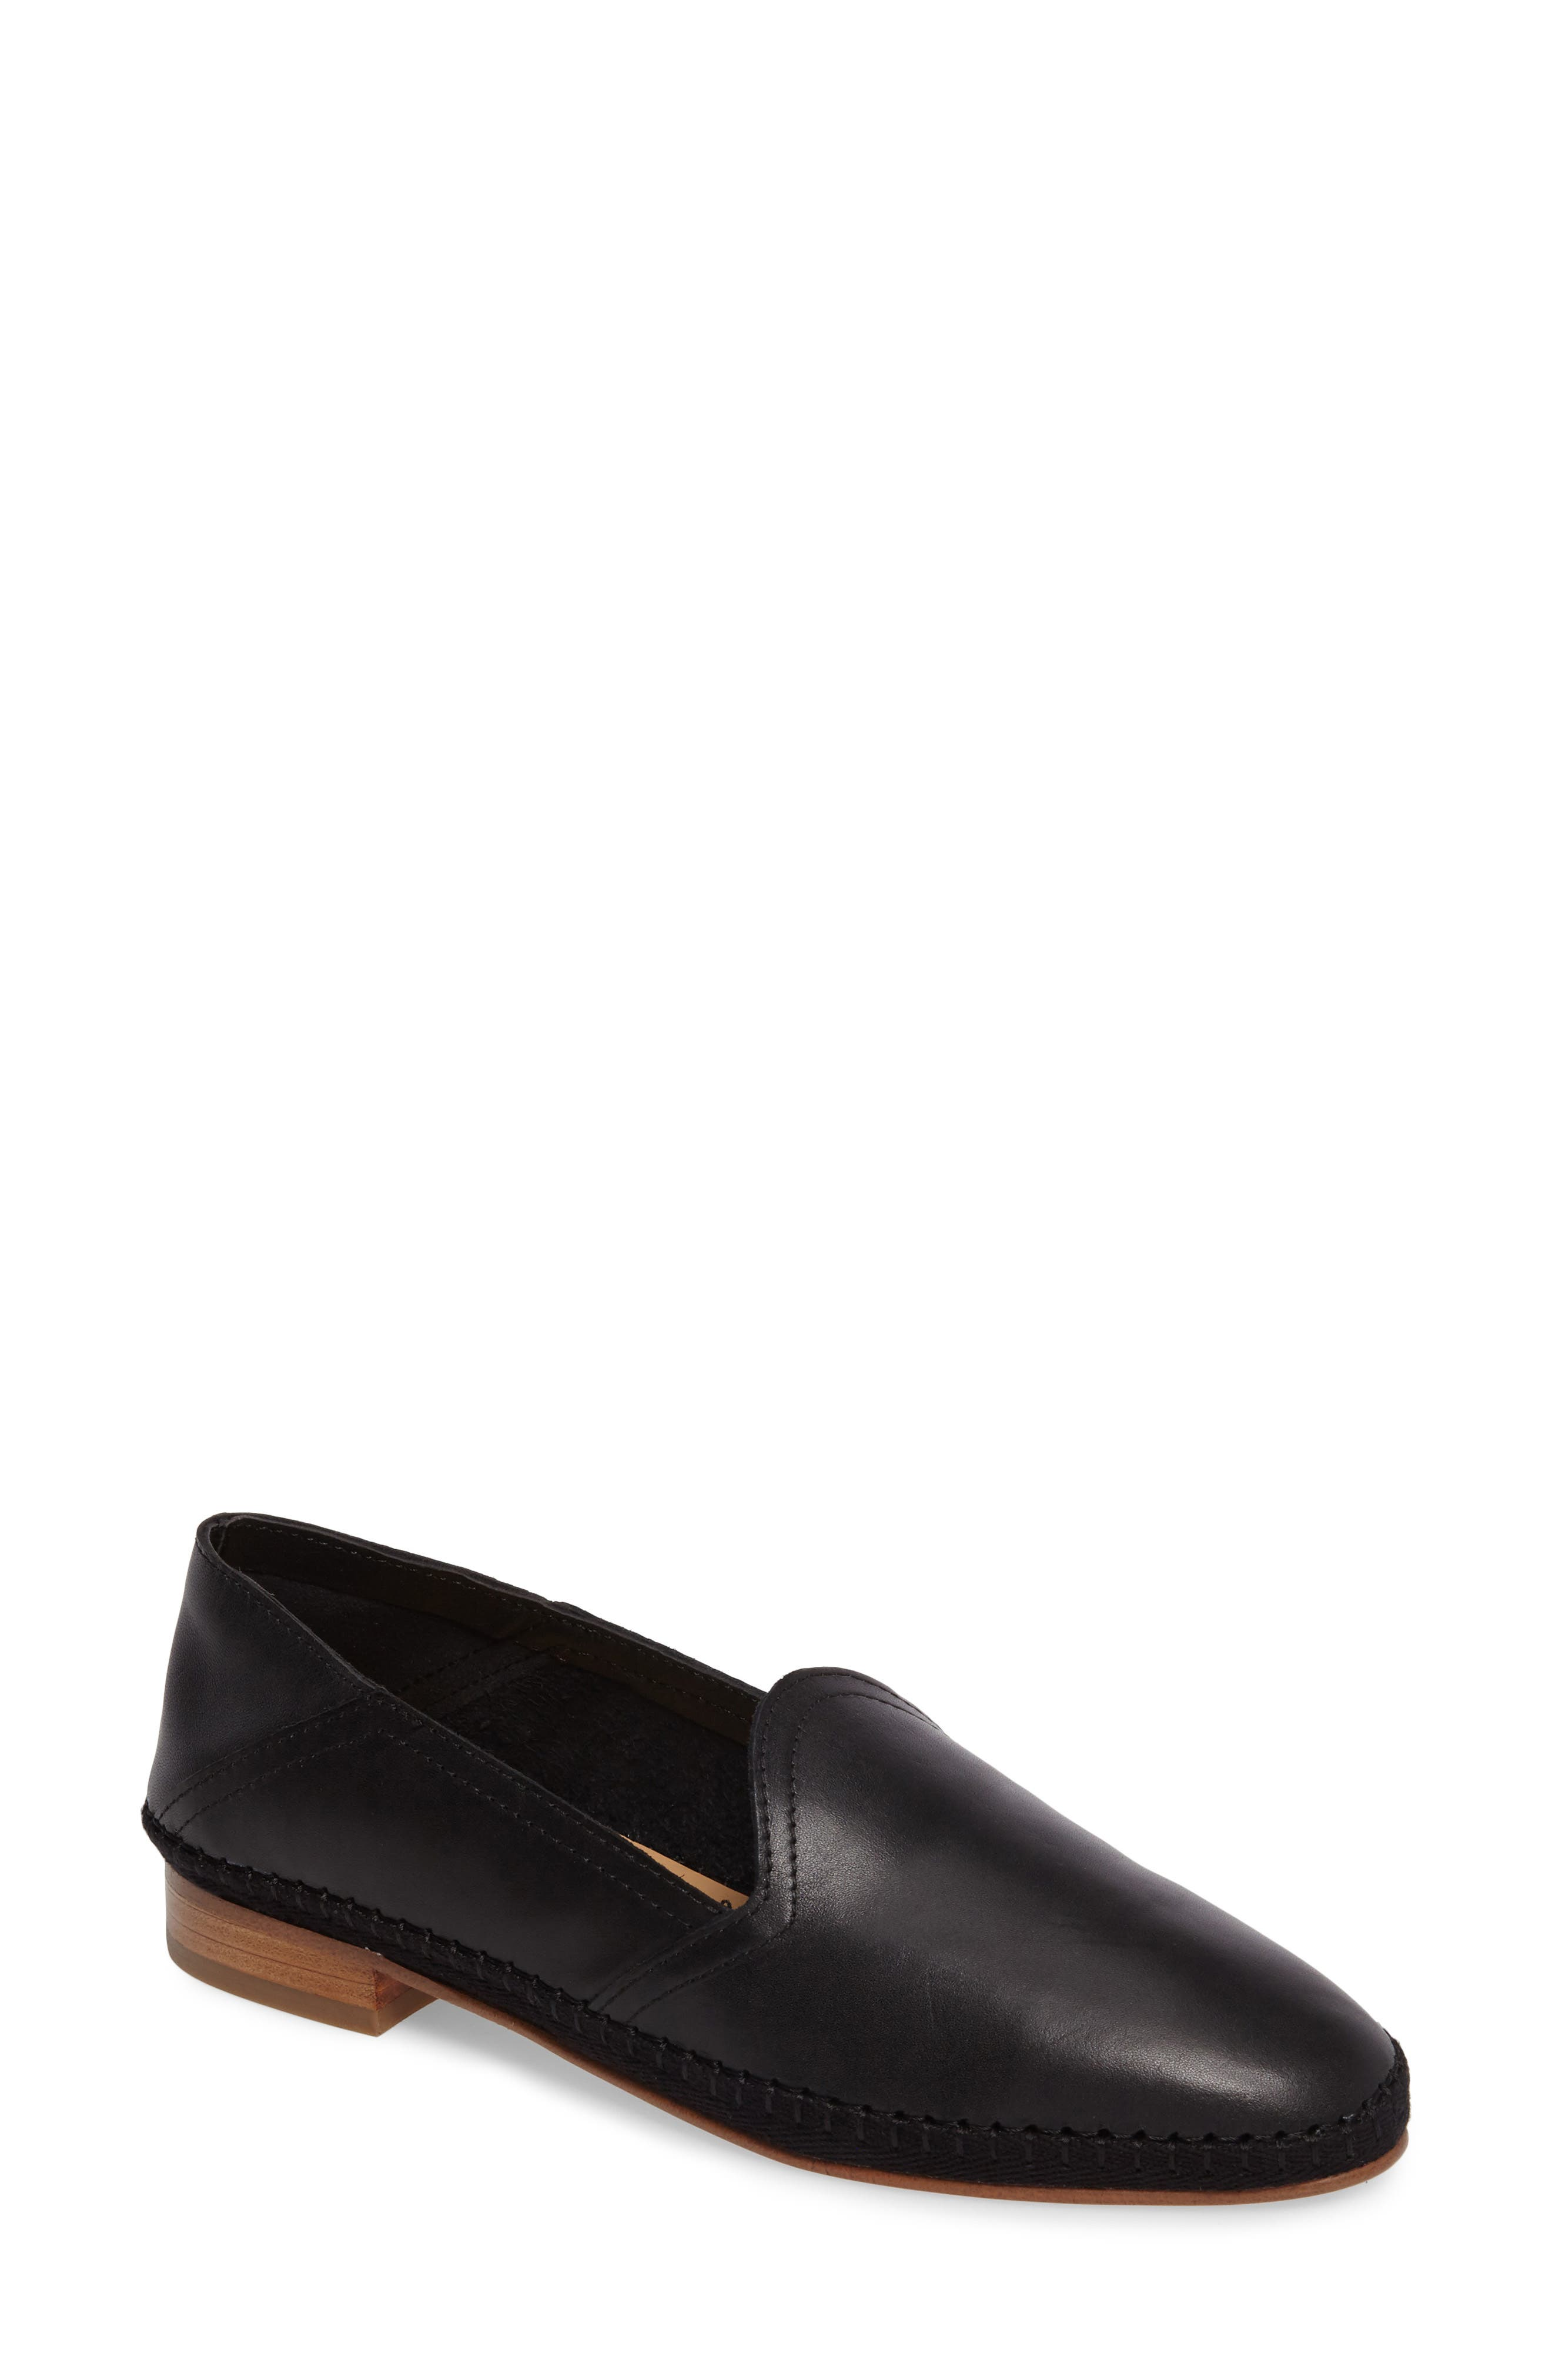 Soludus Convertible Venetian Loafer,                         Main,                         color, 001